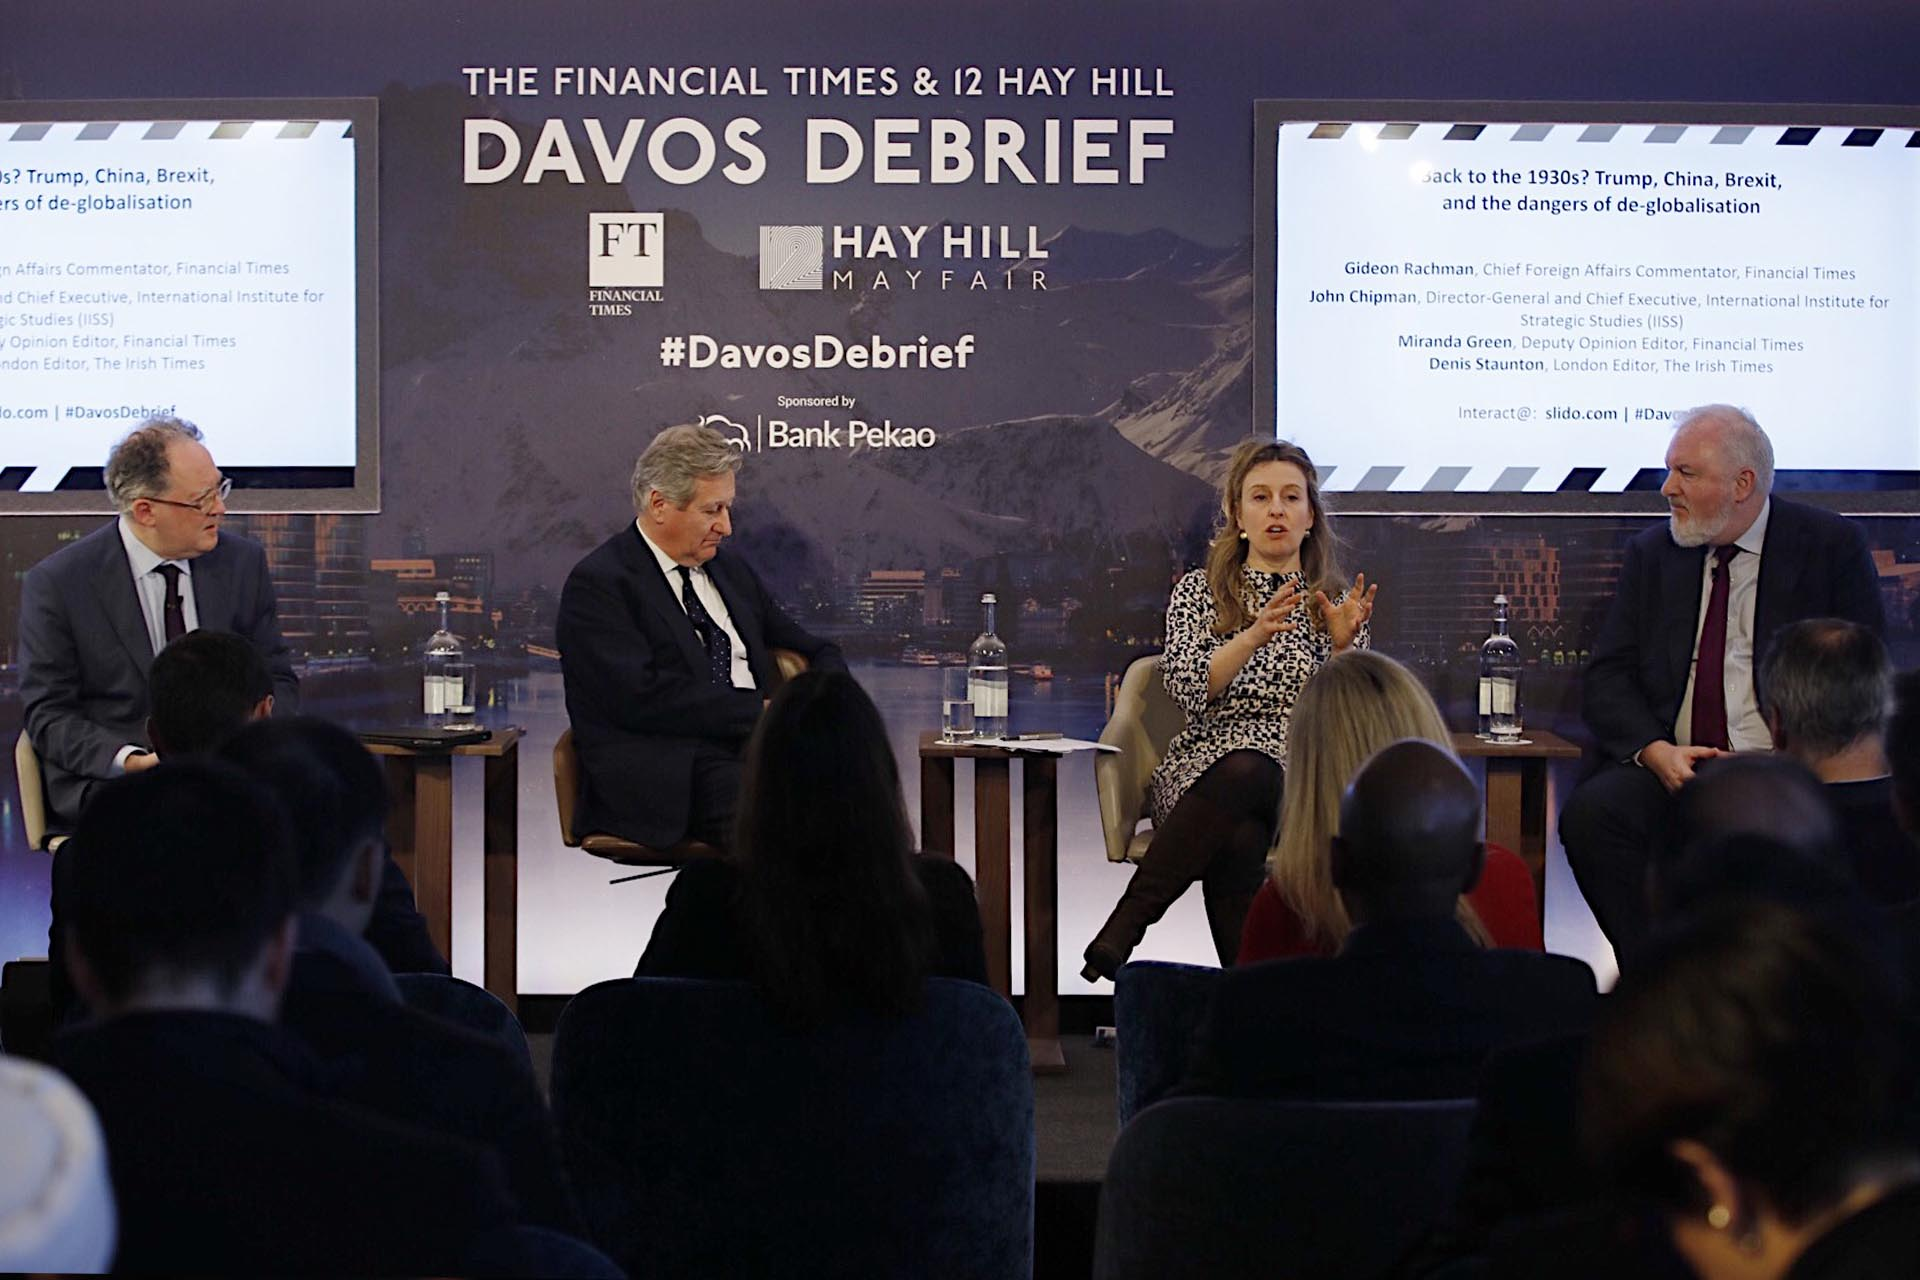 The 12 Hay Hill I Financial Times 2019 Davos Debrief – Session Two